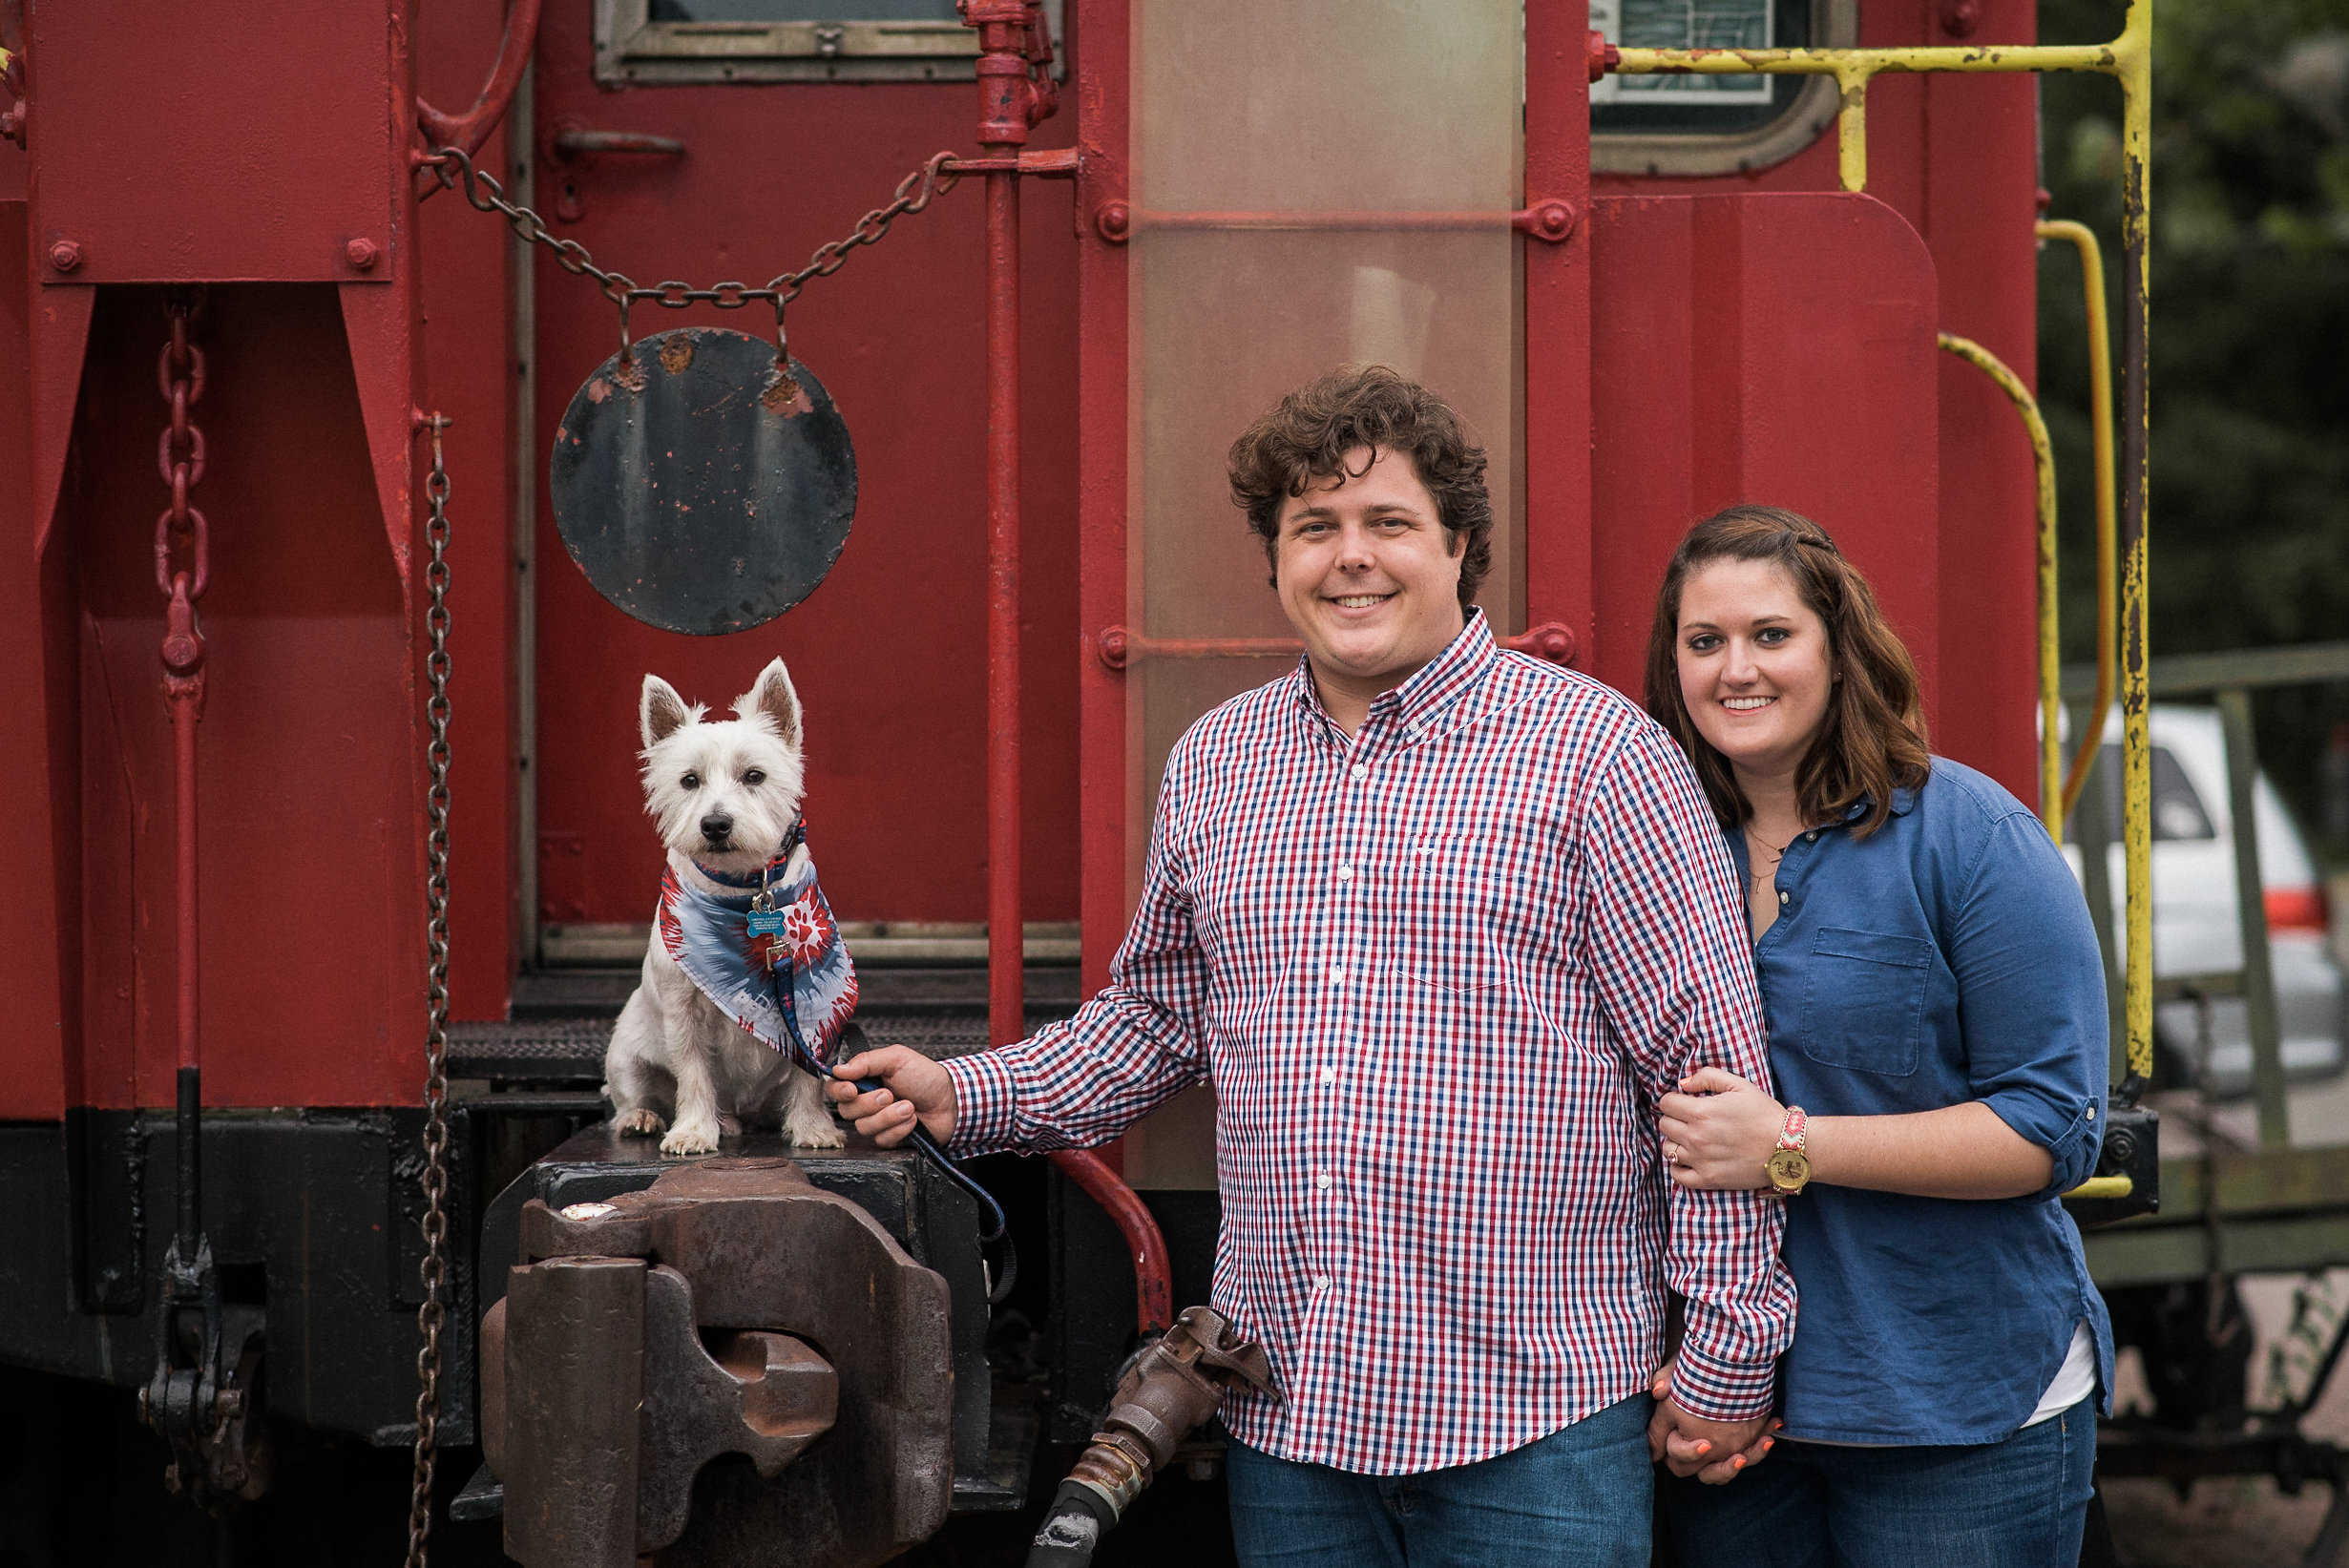 Couple standing by train with dog